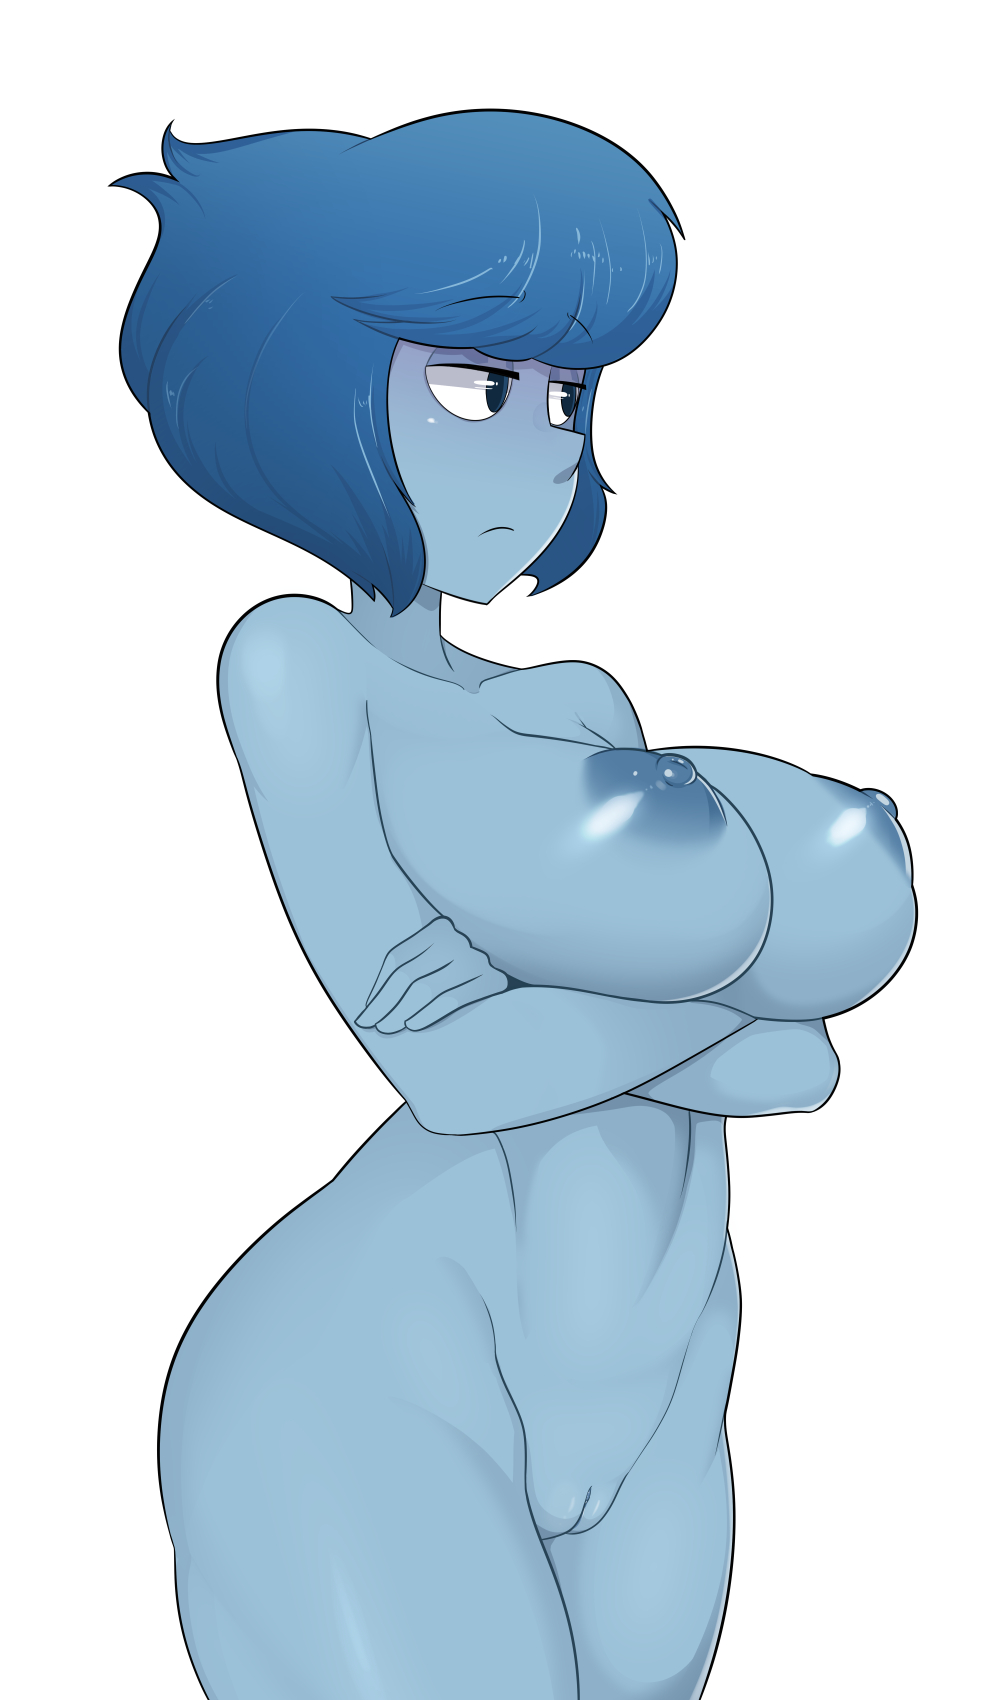 A naked girl blue skin